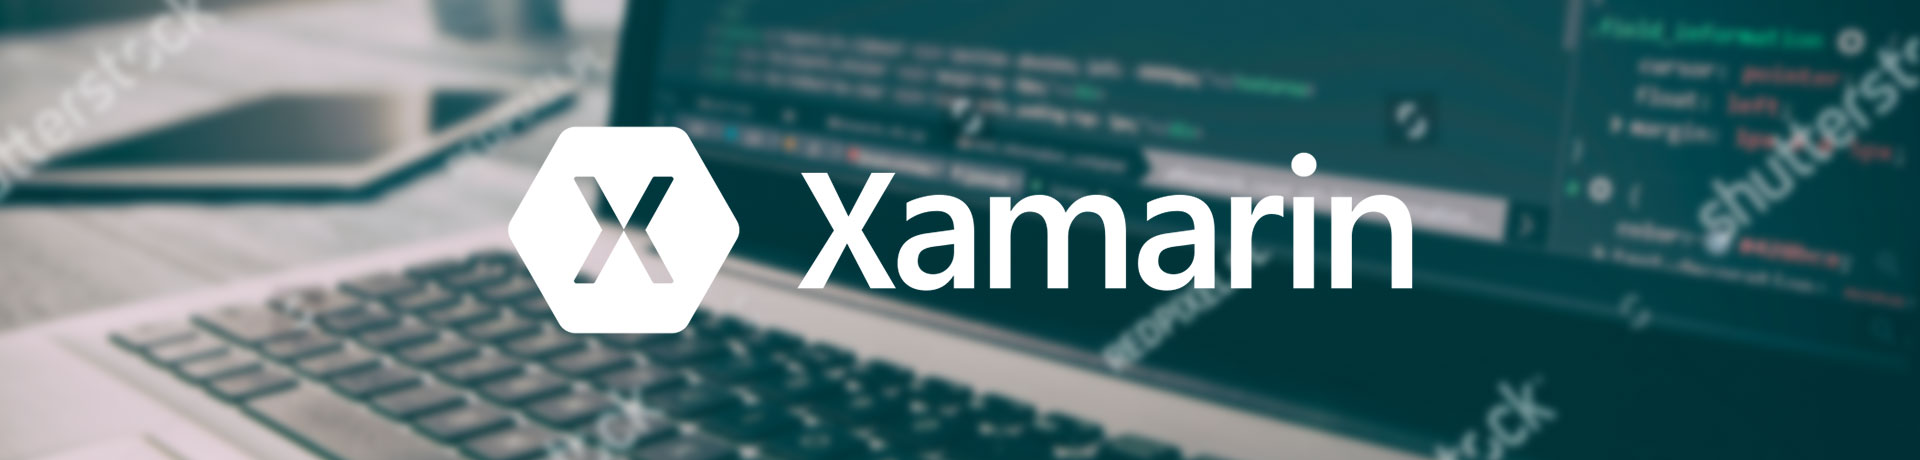 Why choose Xamarin